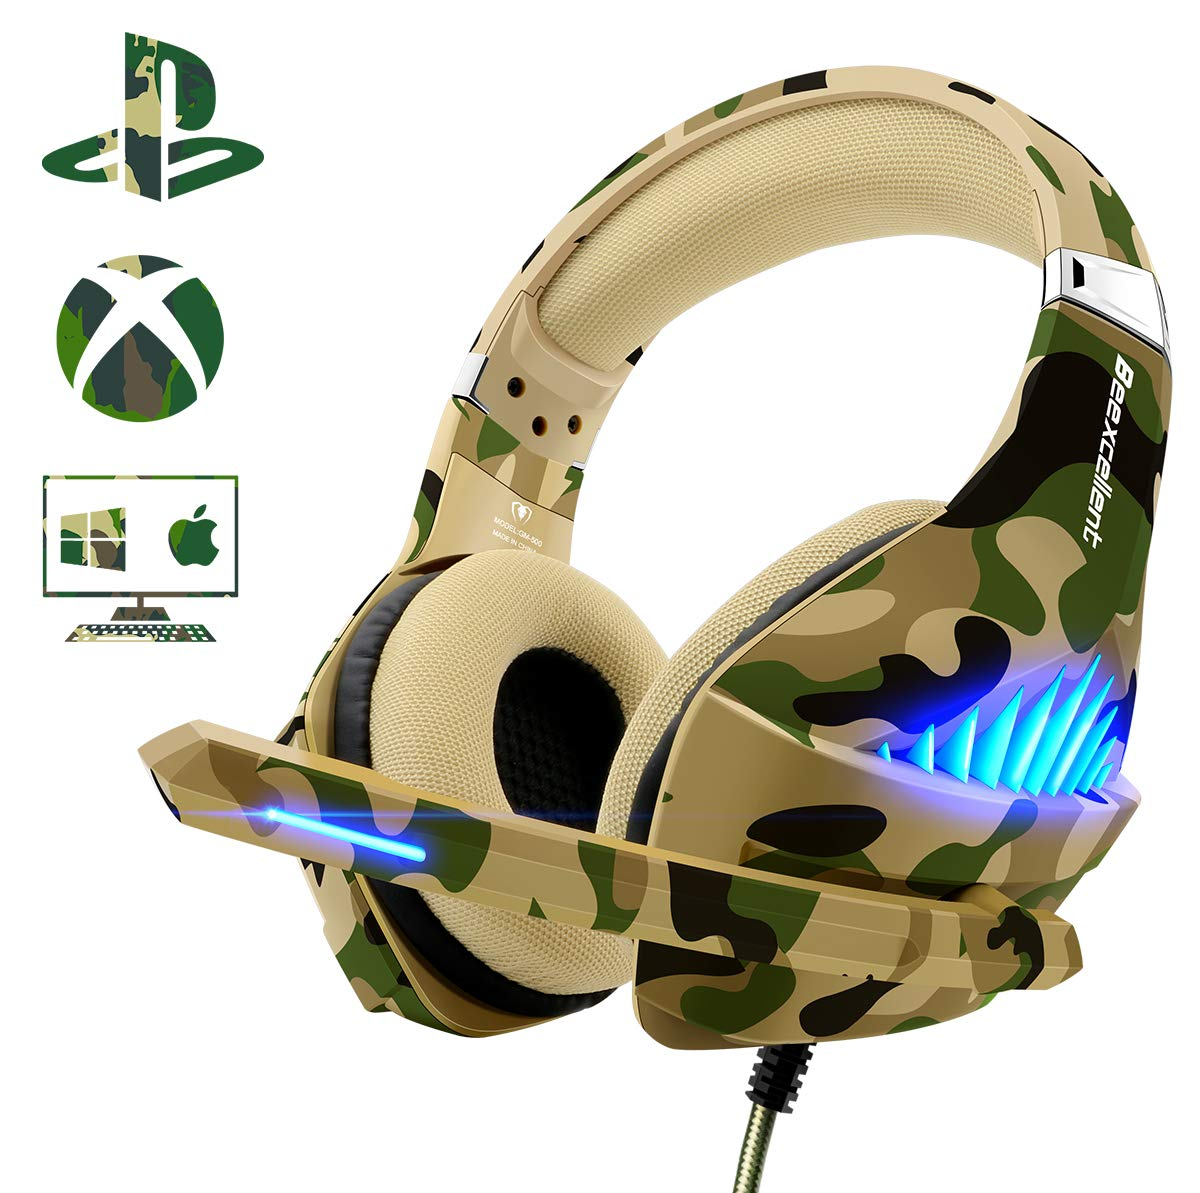 Gaming Headset for PS4 Xbox One PC, Beexcellent Deep Bass PS4 Headset with Noise Immunity Mic, LED Light, Friction-Reduction Cable, High Comfort Earmuff-Camo by Beexcellent